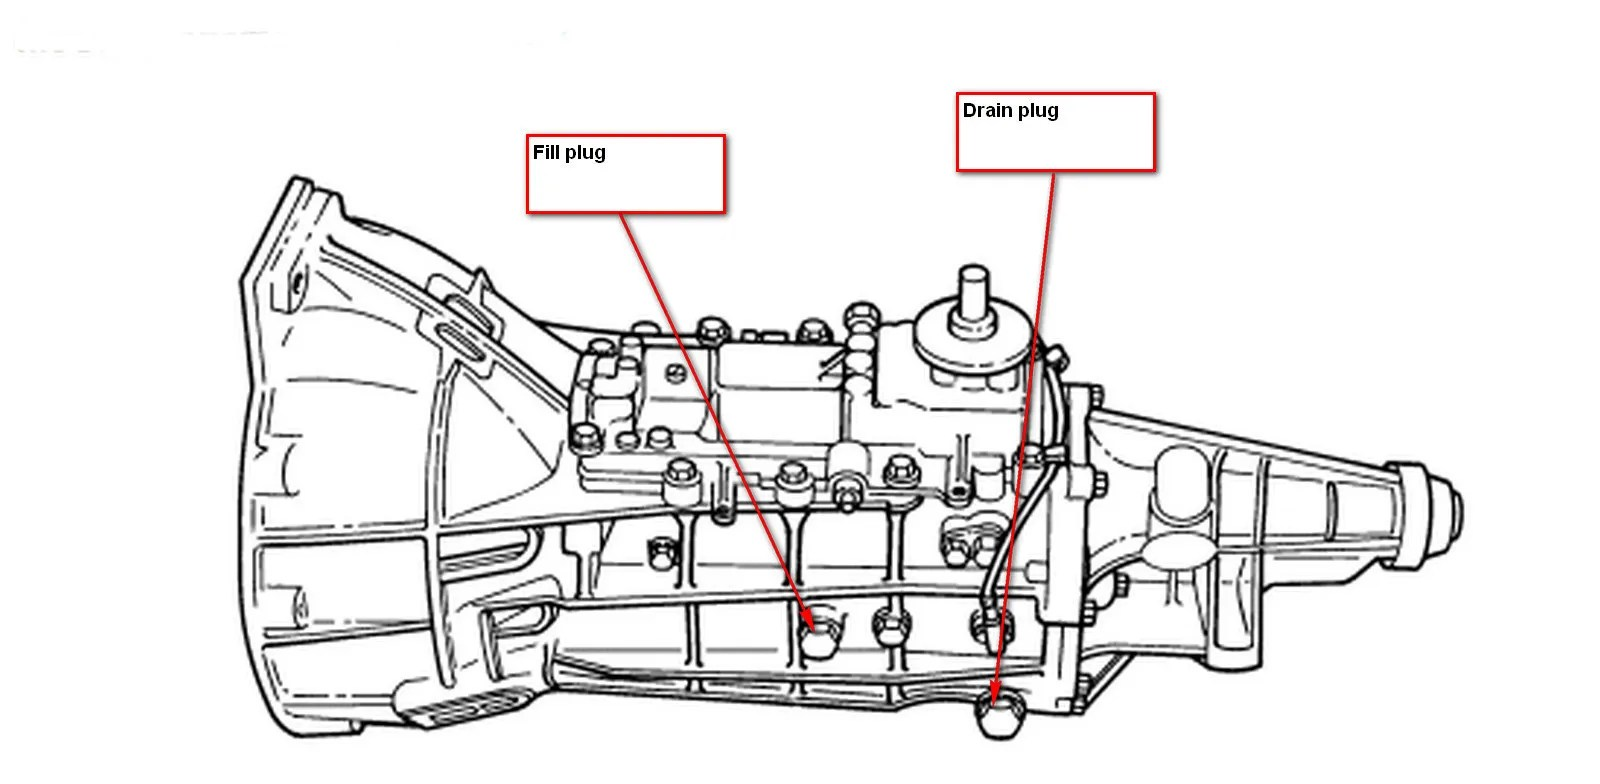 hight resolution of 2009 ford ranger fuel filter location